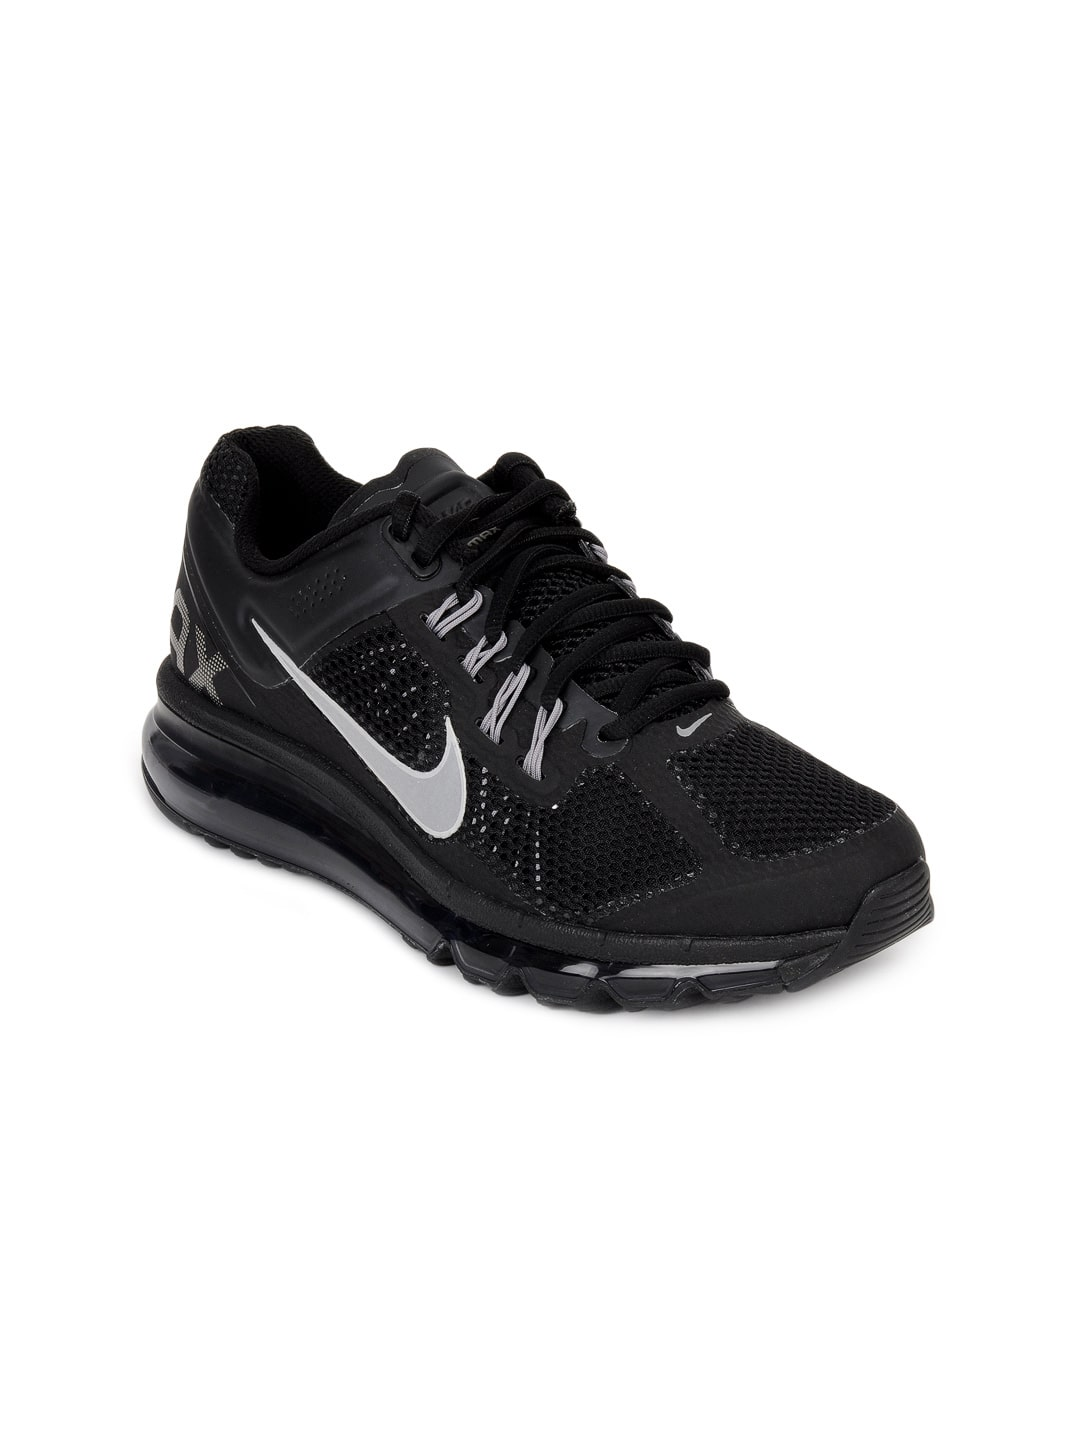 Nike 554886 101 Men White Air Max+ 2013 Sports Shoes Best